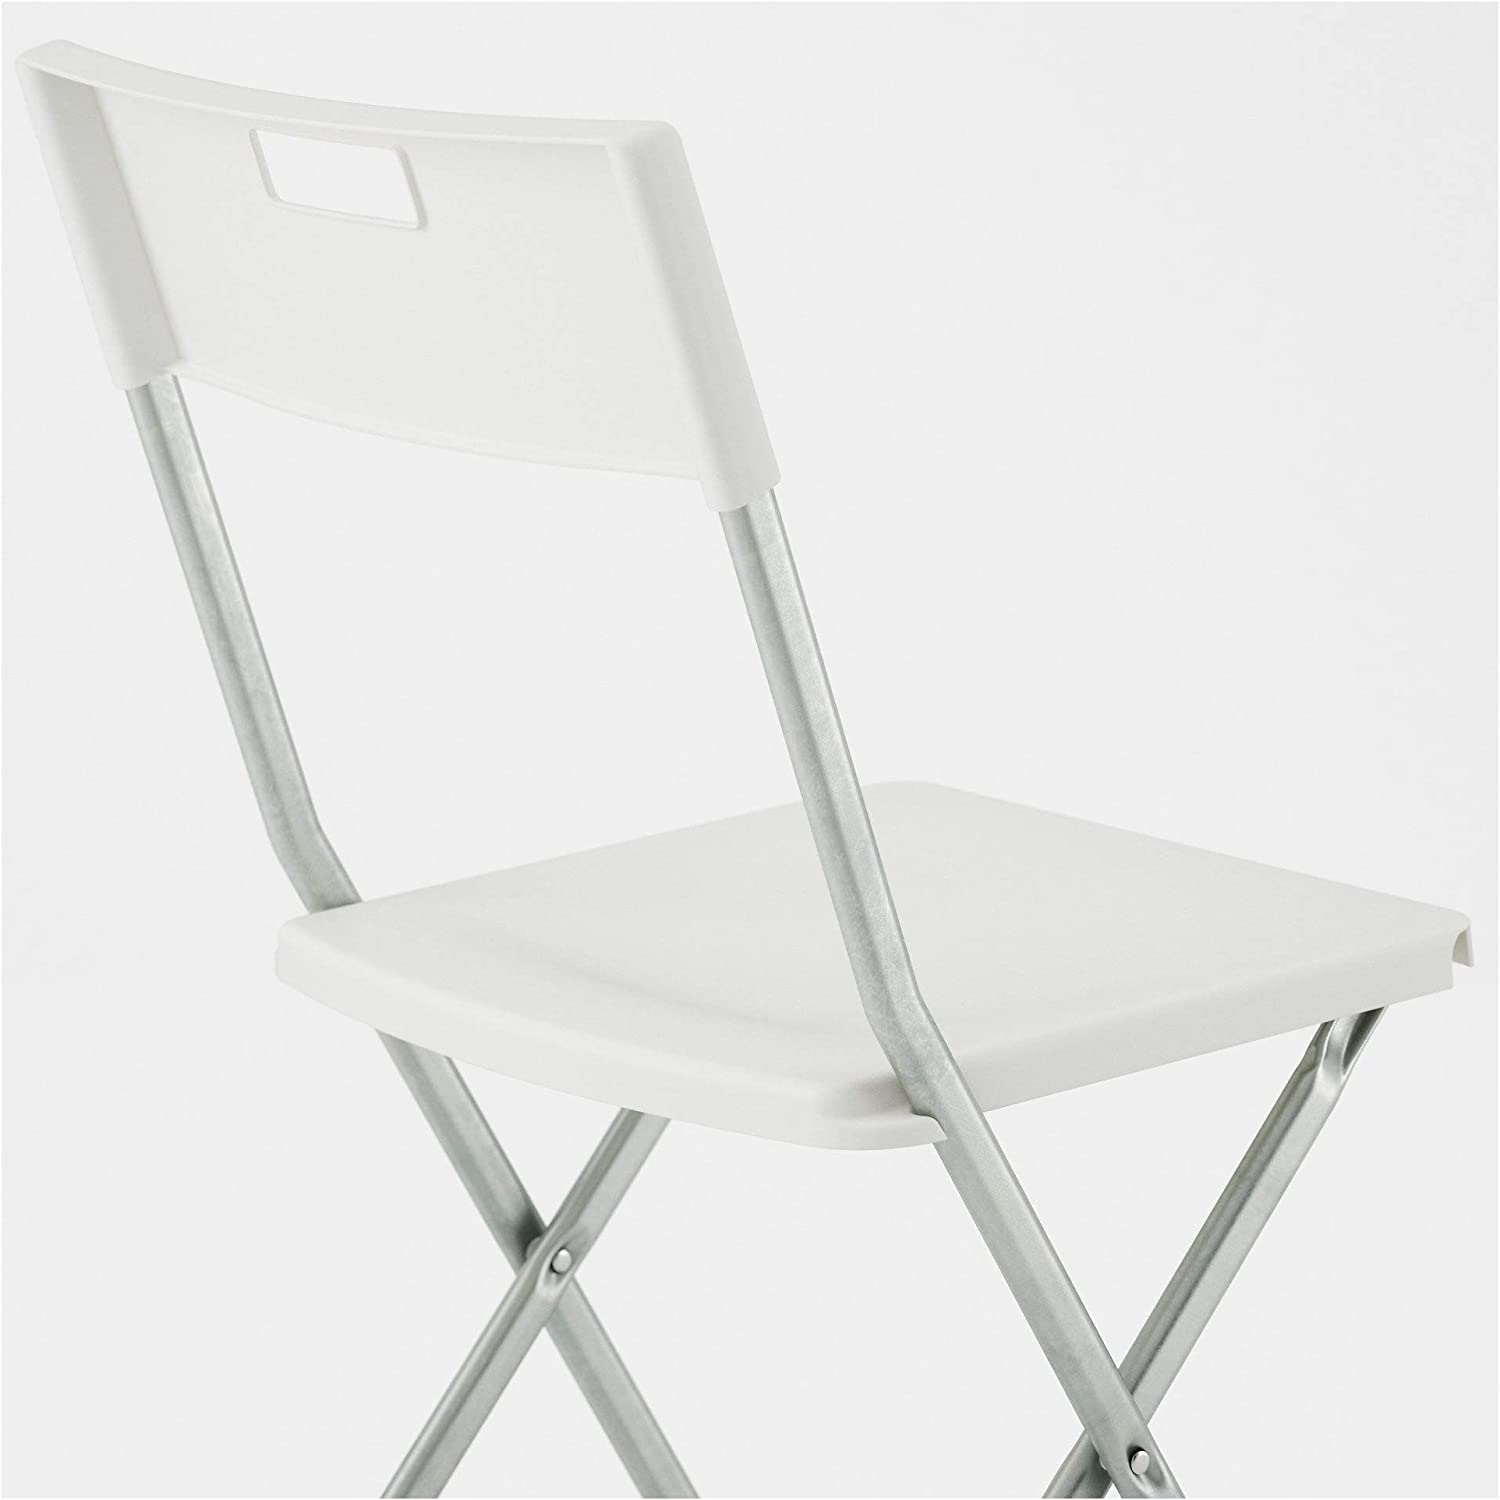 MBI Folding chair White Width: 41 cm Assembled size: Tested for: 100 kg Height: 78 cm Depth: 45 cm